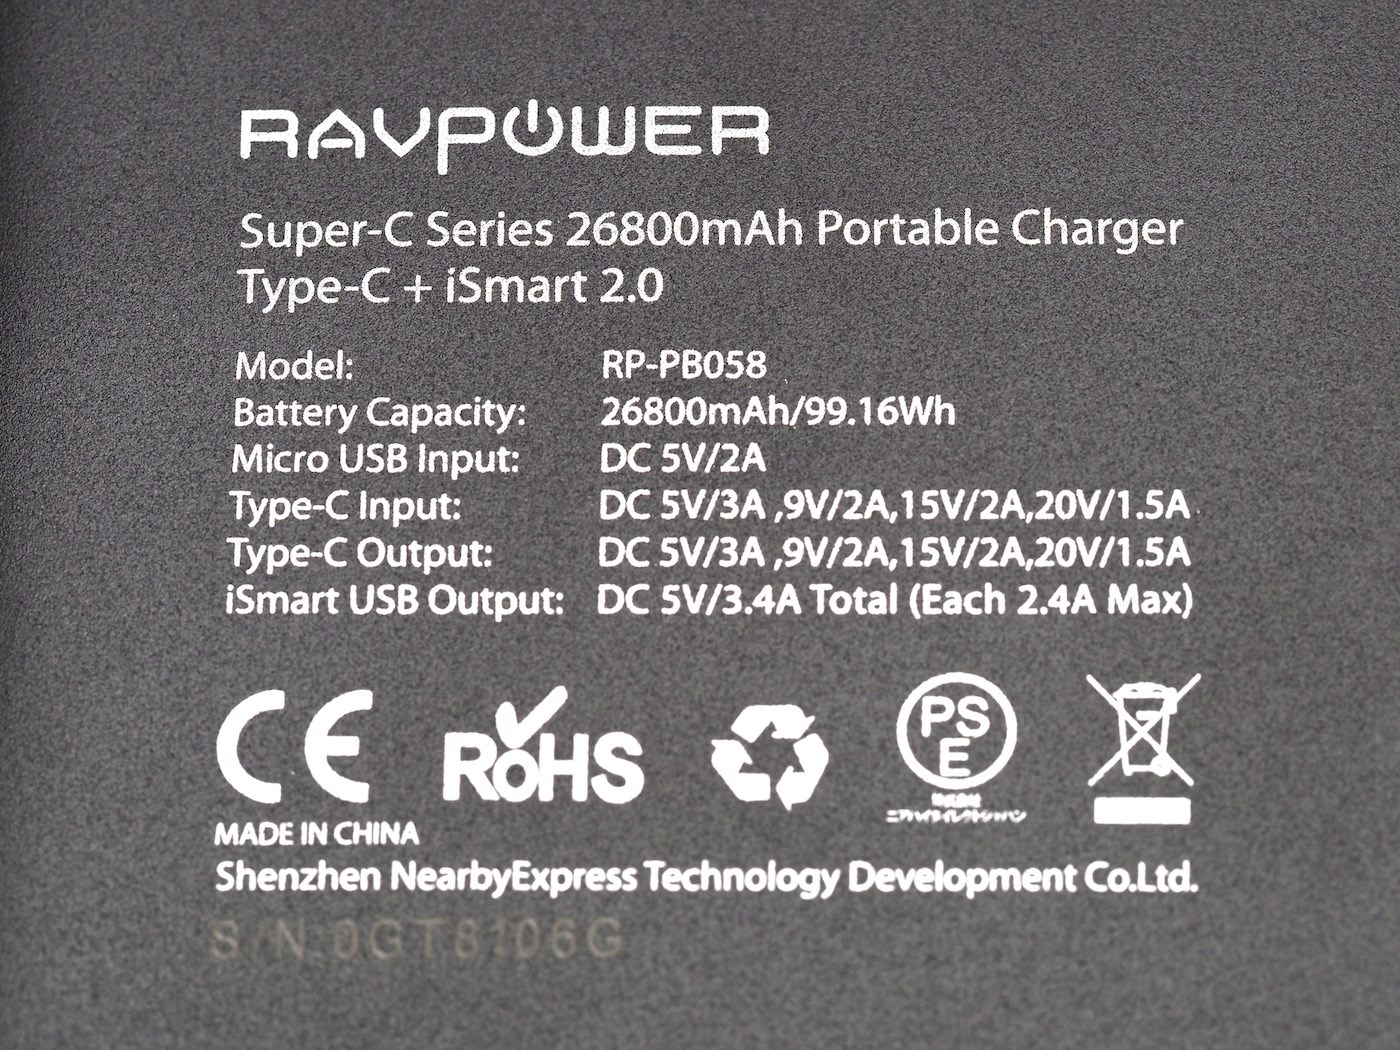 Ravpower type c 26800mah 00003